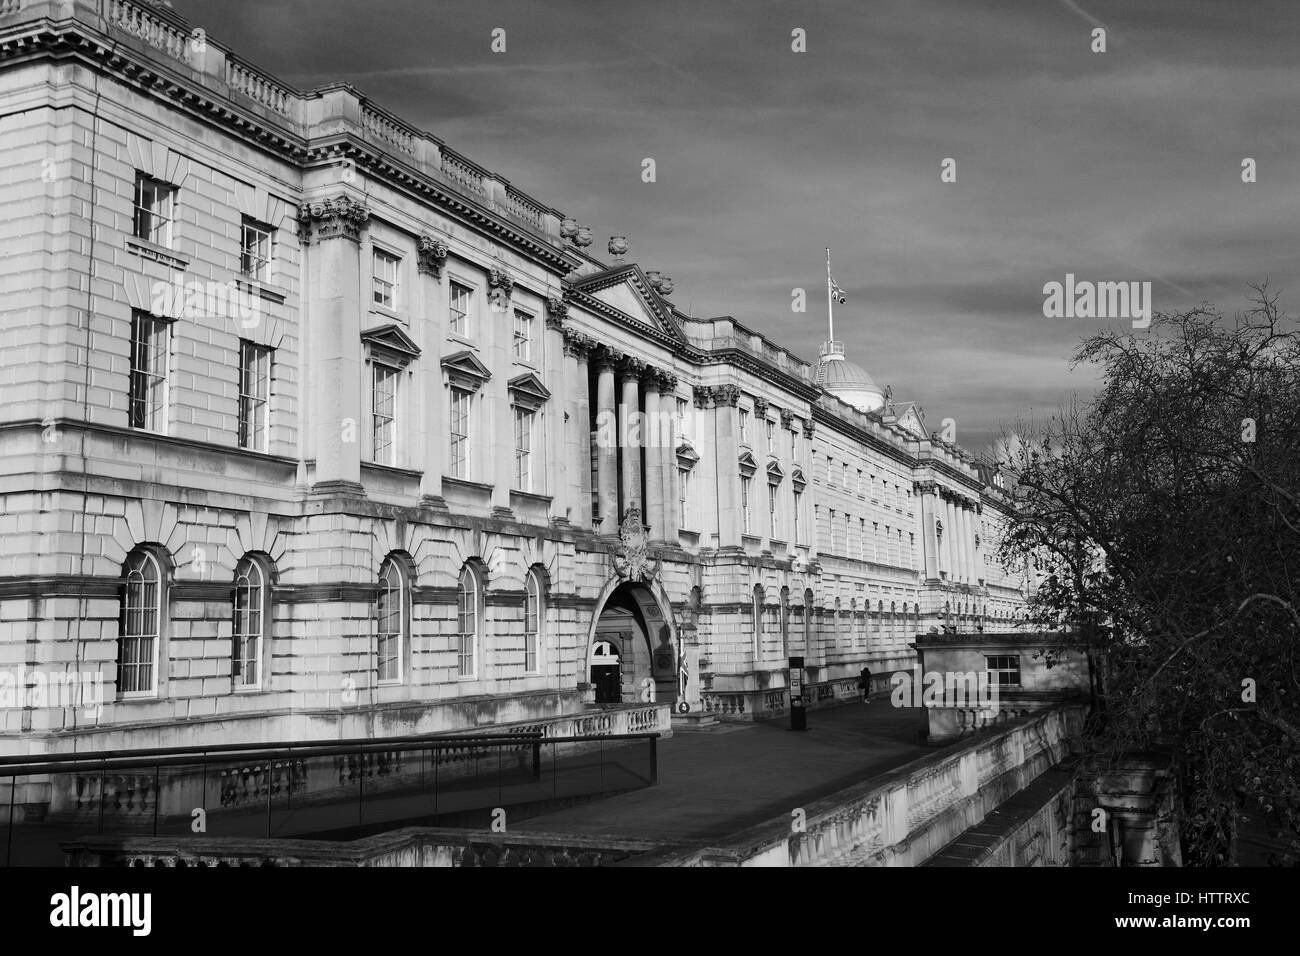 Somerset House, a large Neoclassical building situated on the south side of the Strand, North Bank, river Thames, - Stock Image